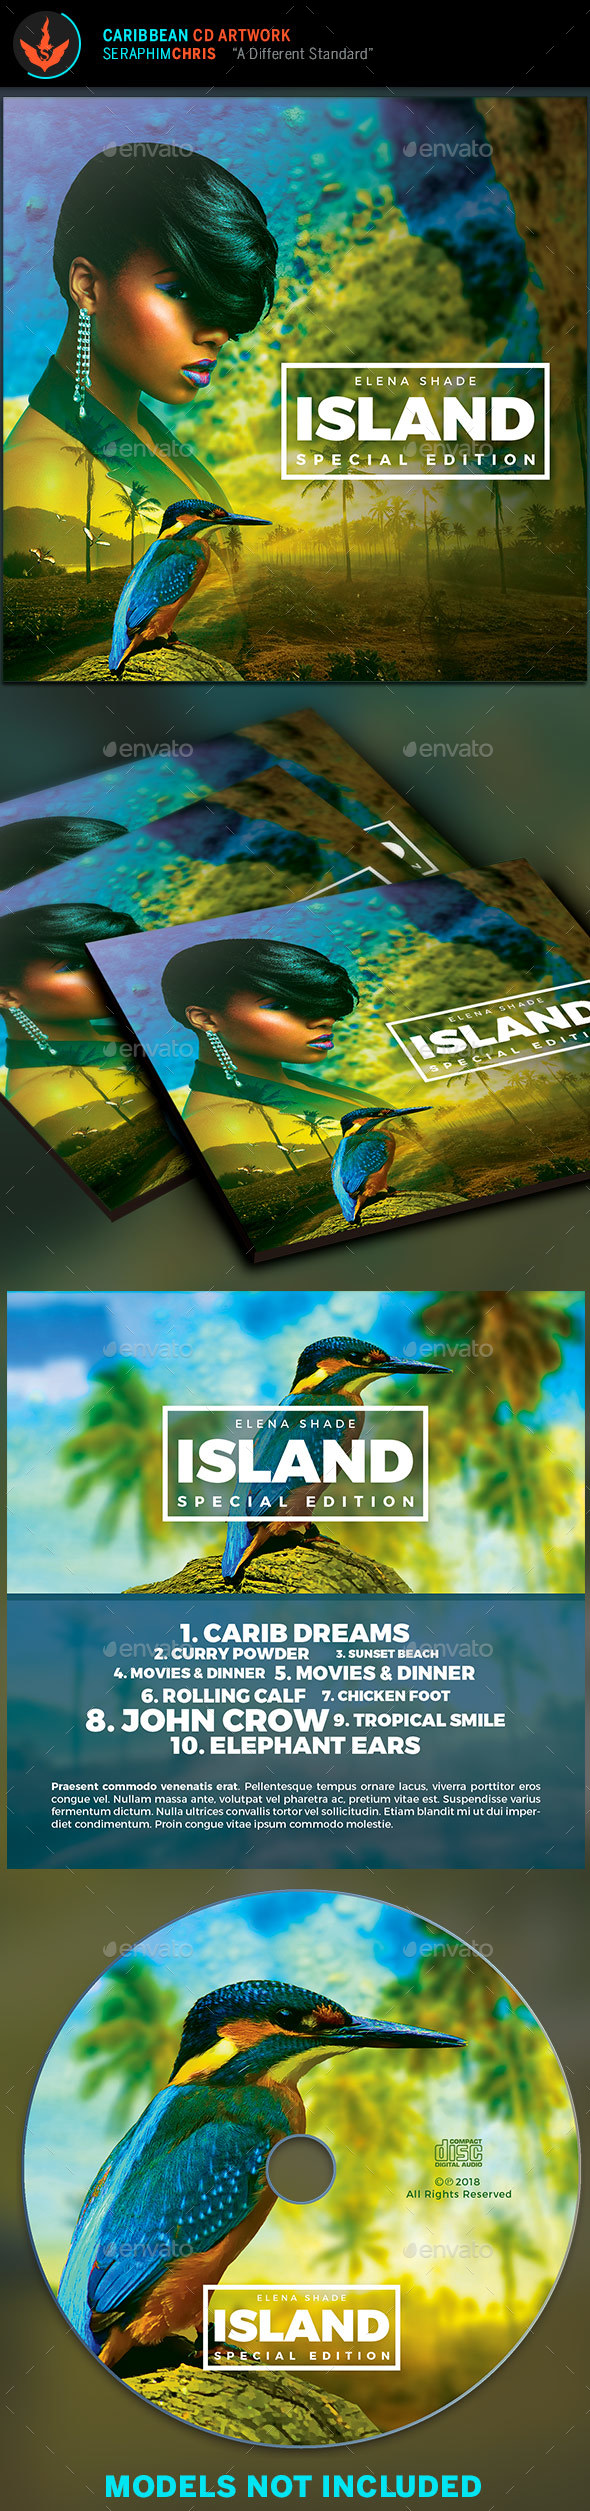 Caribbean CD Artwork Template - CD & DVD Artwork Print Templates